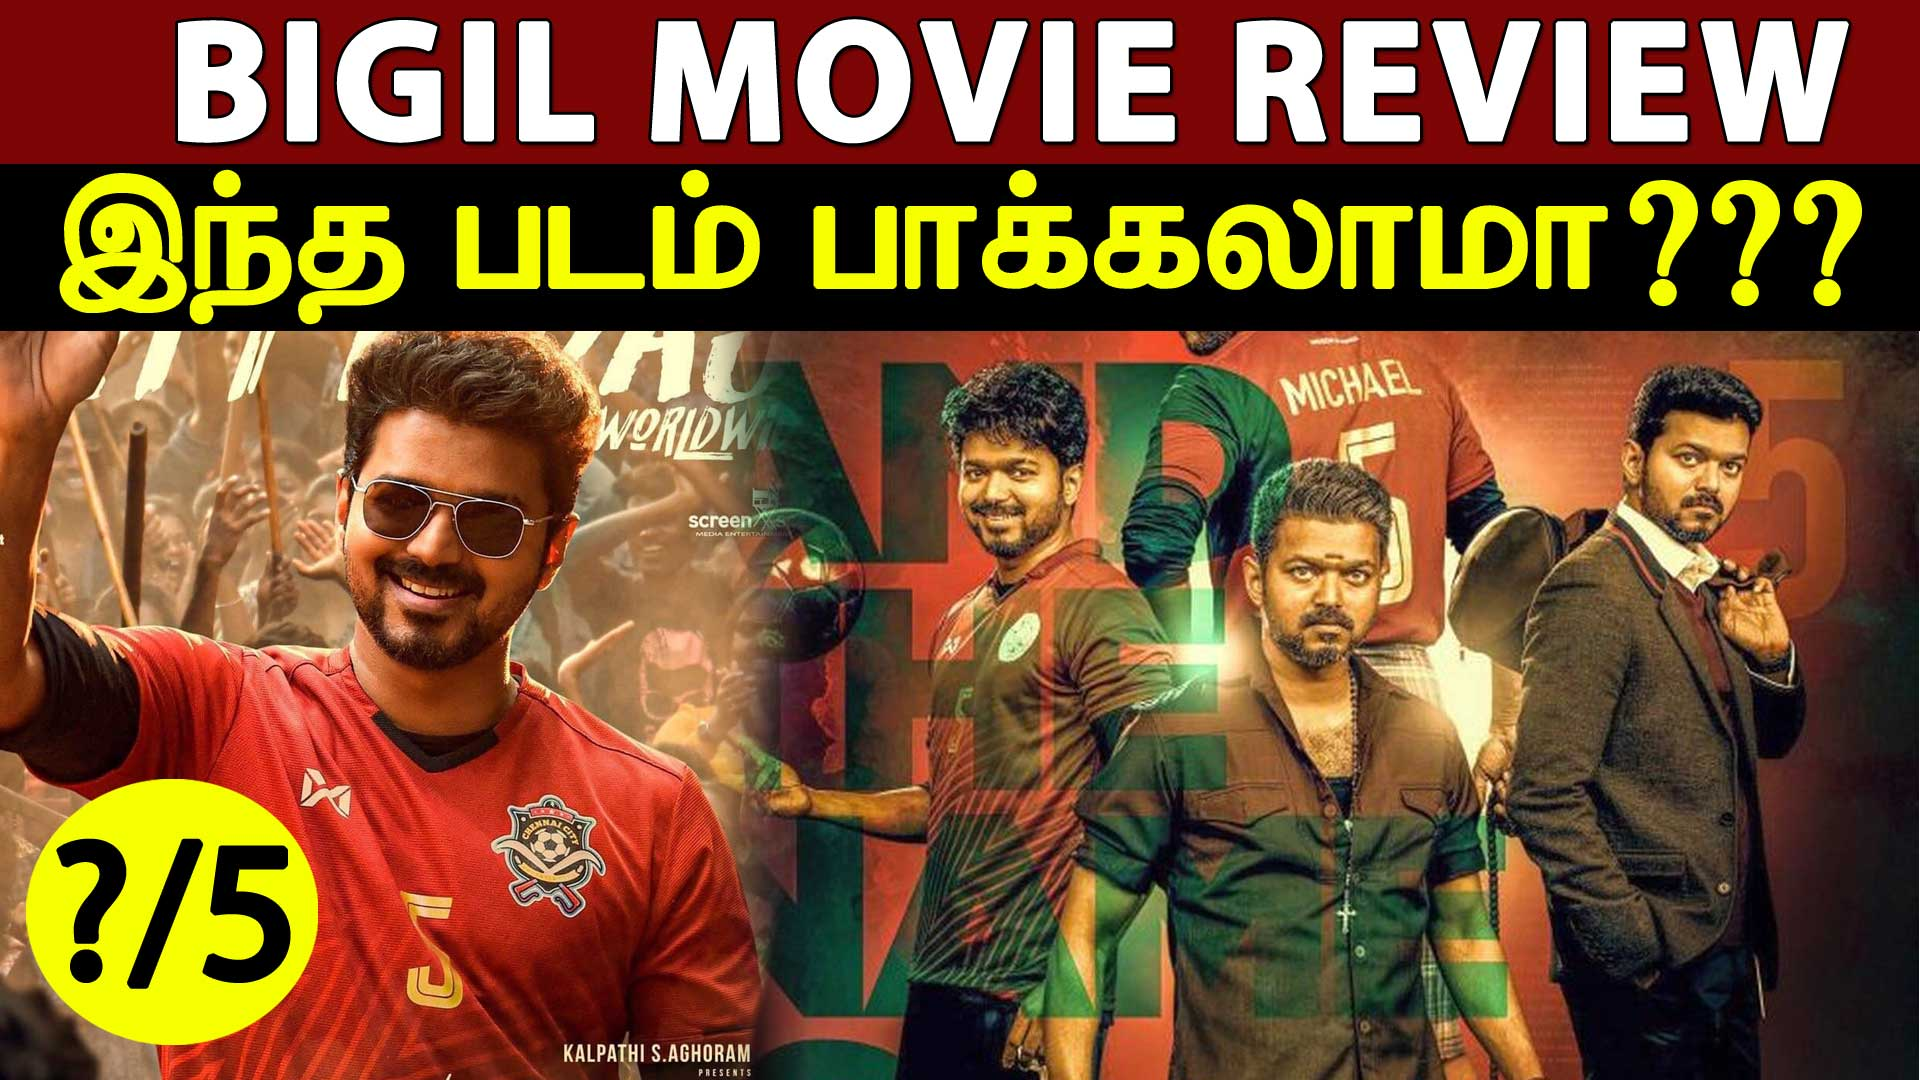 Bigil Movie Review by Praveena | Thalapathy Vijay | Nayanthara | Atlee | Bigil Public Opinion